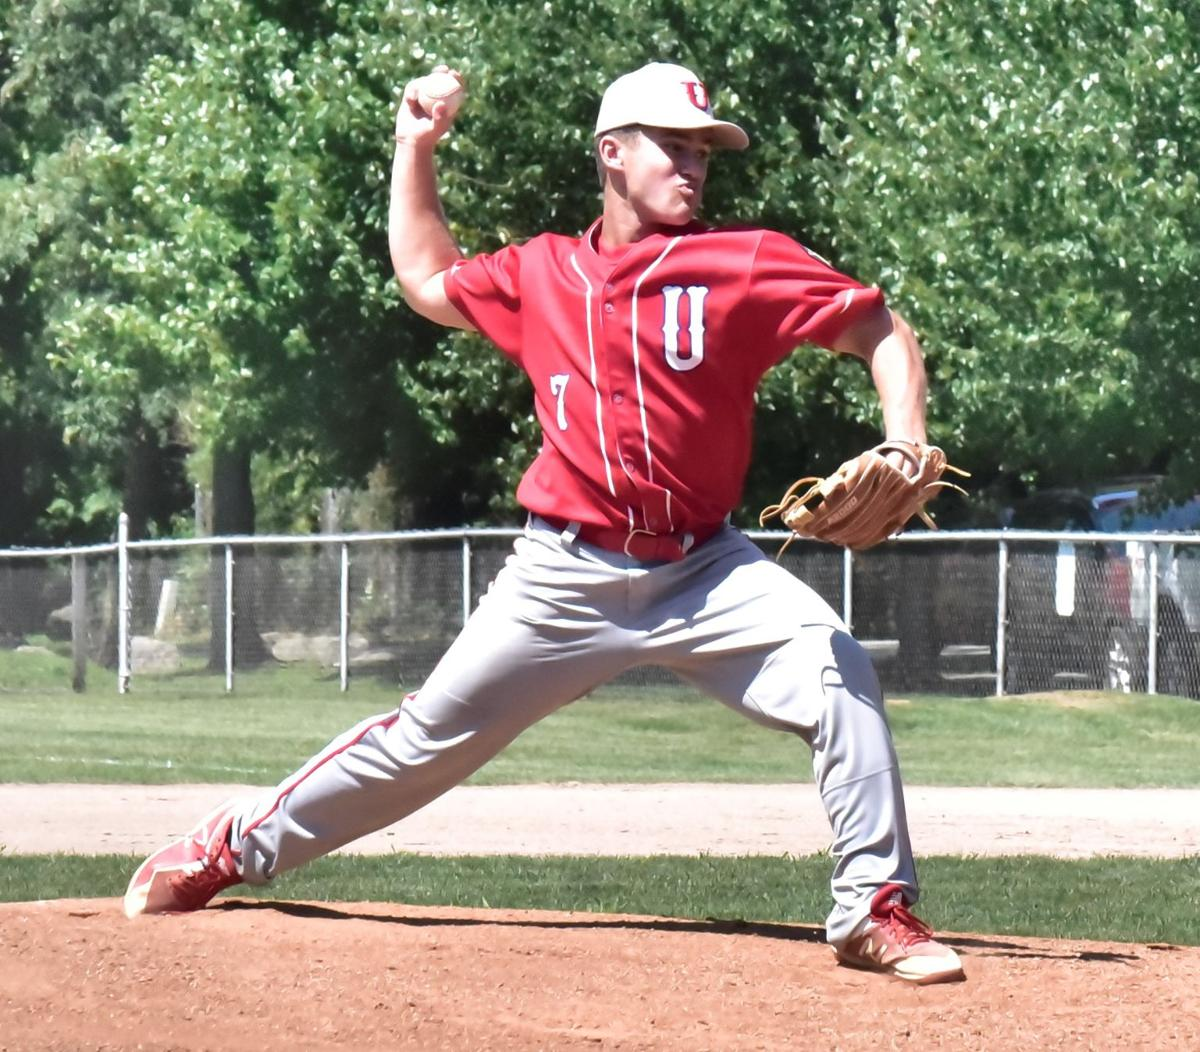 Scott earns win on the mound